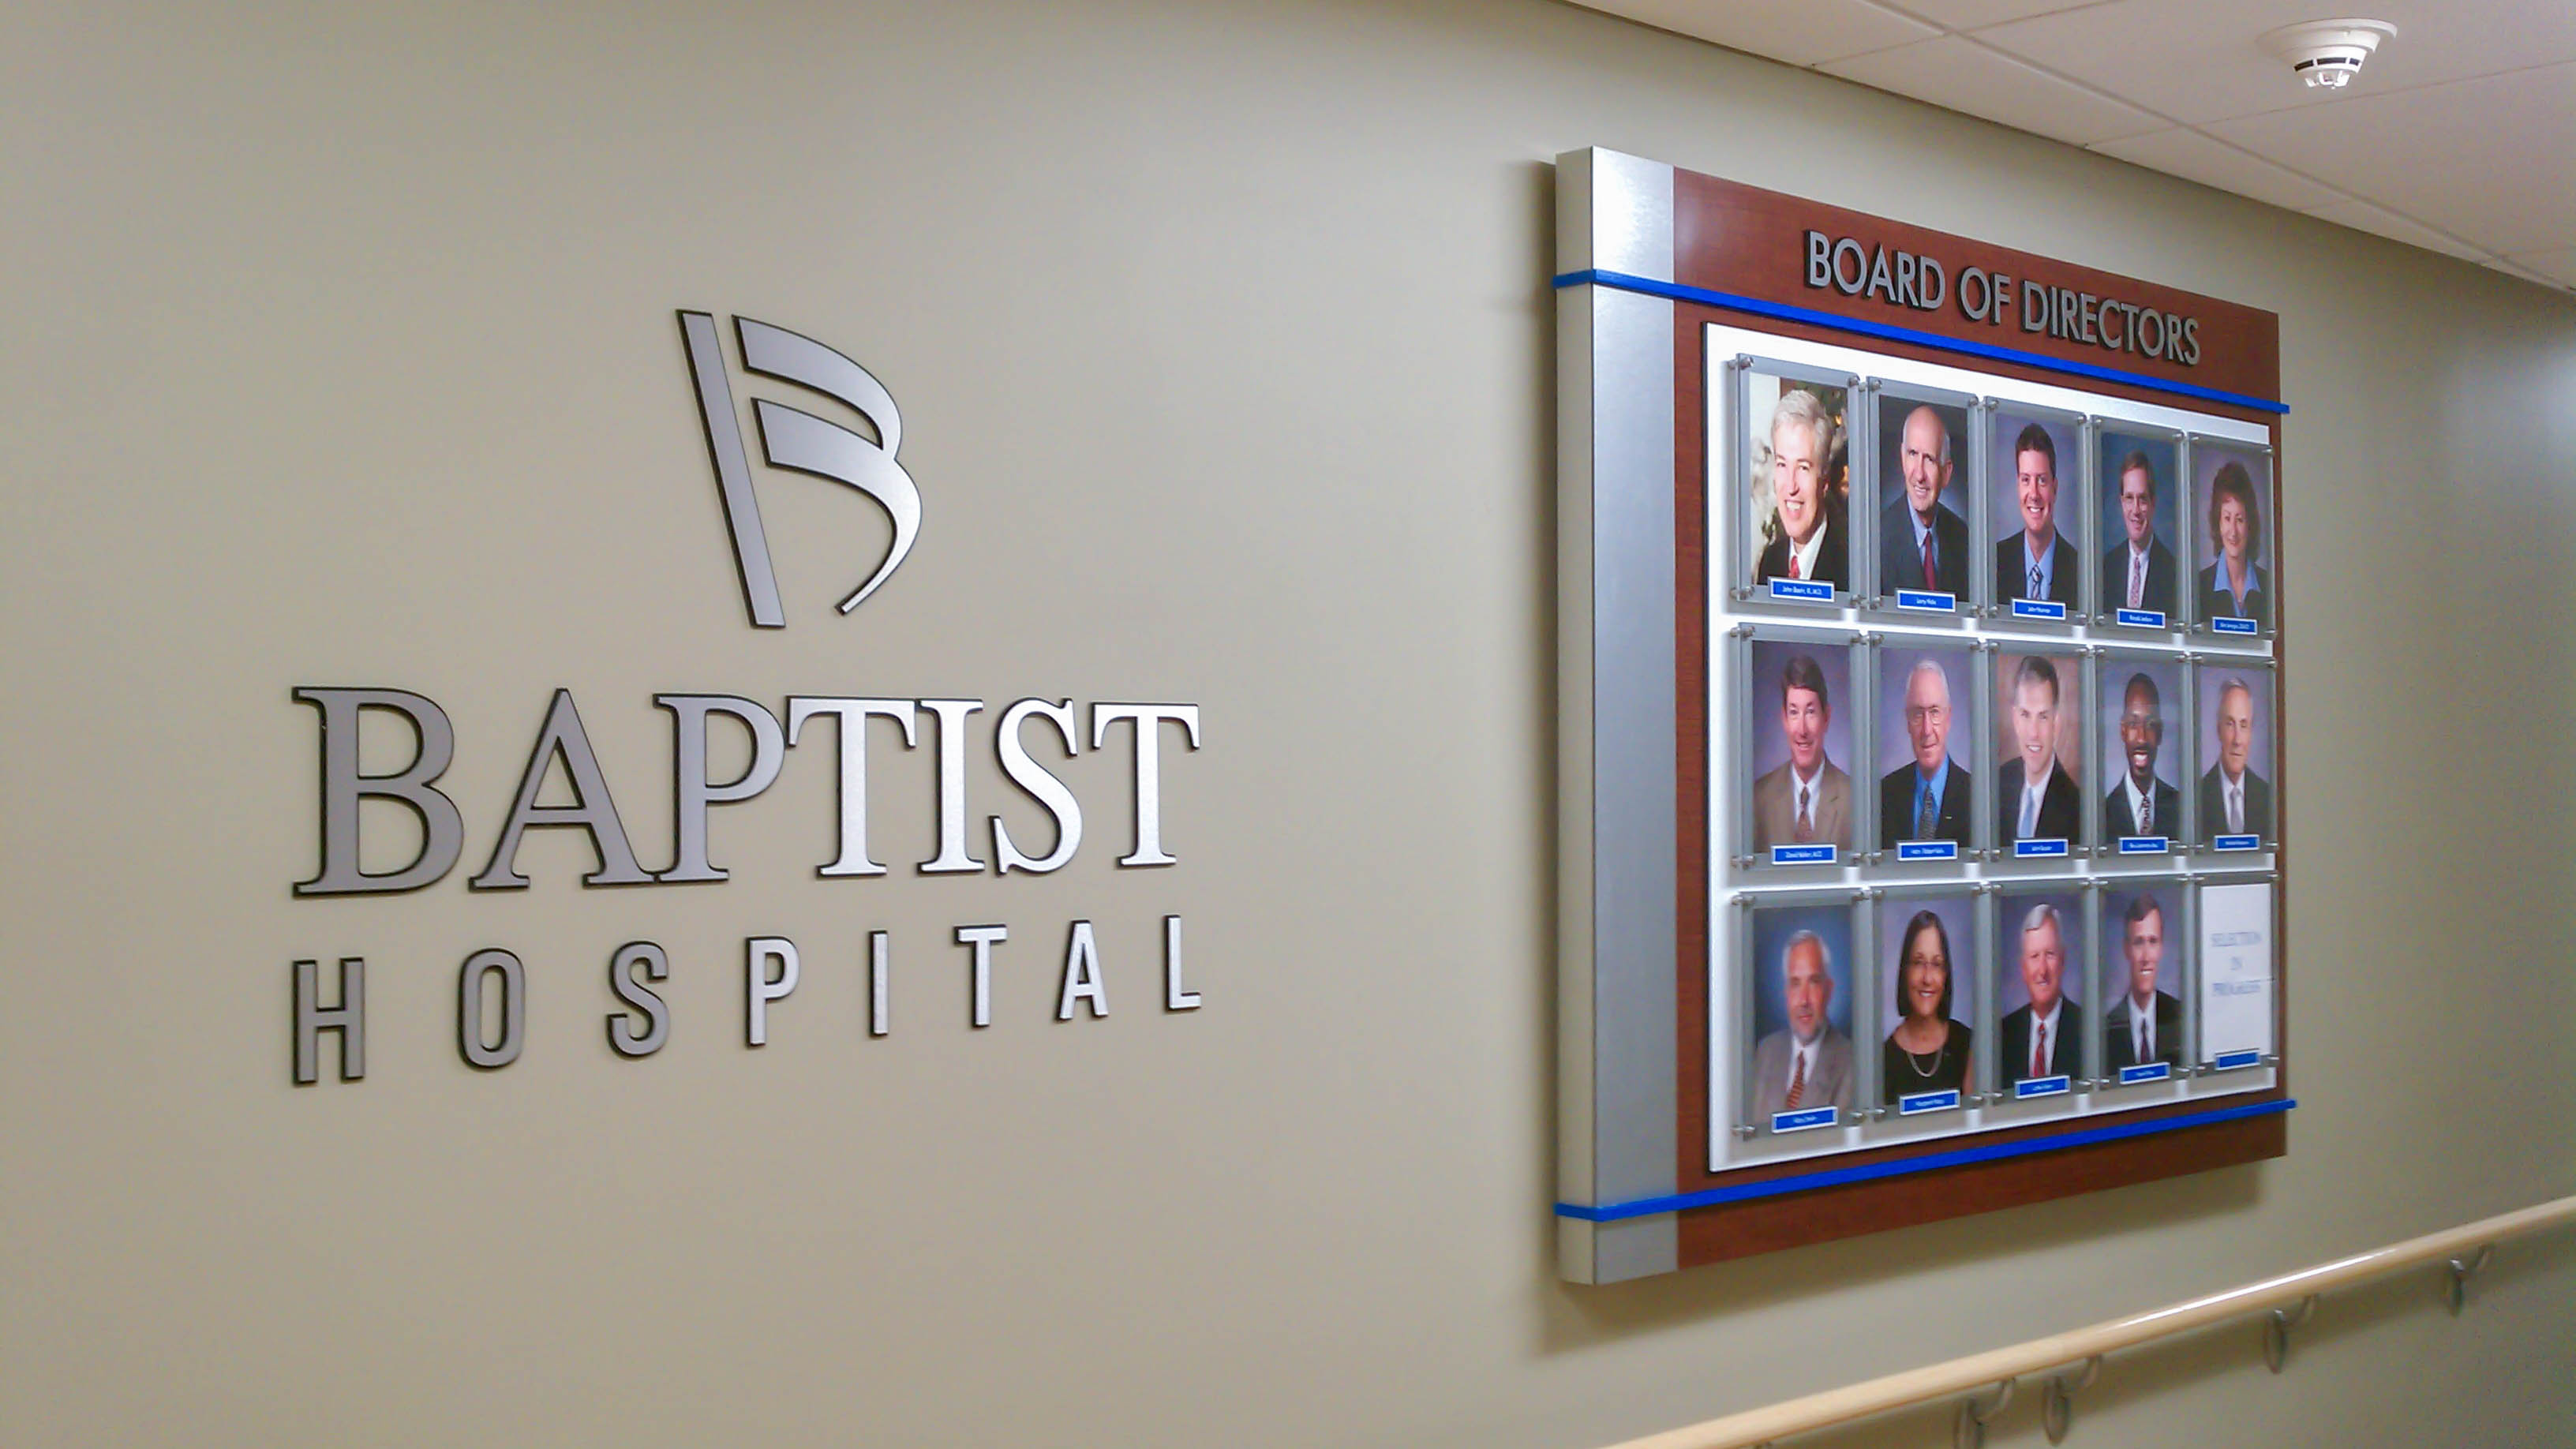 Interior board of directors photo display and dimensional lettering for Baptist Hospital - signgeek Branded Environments